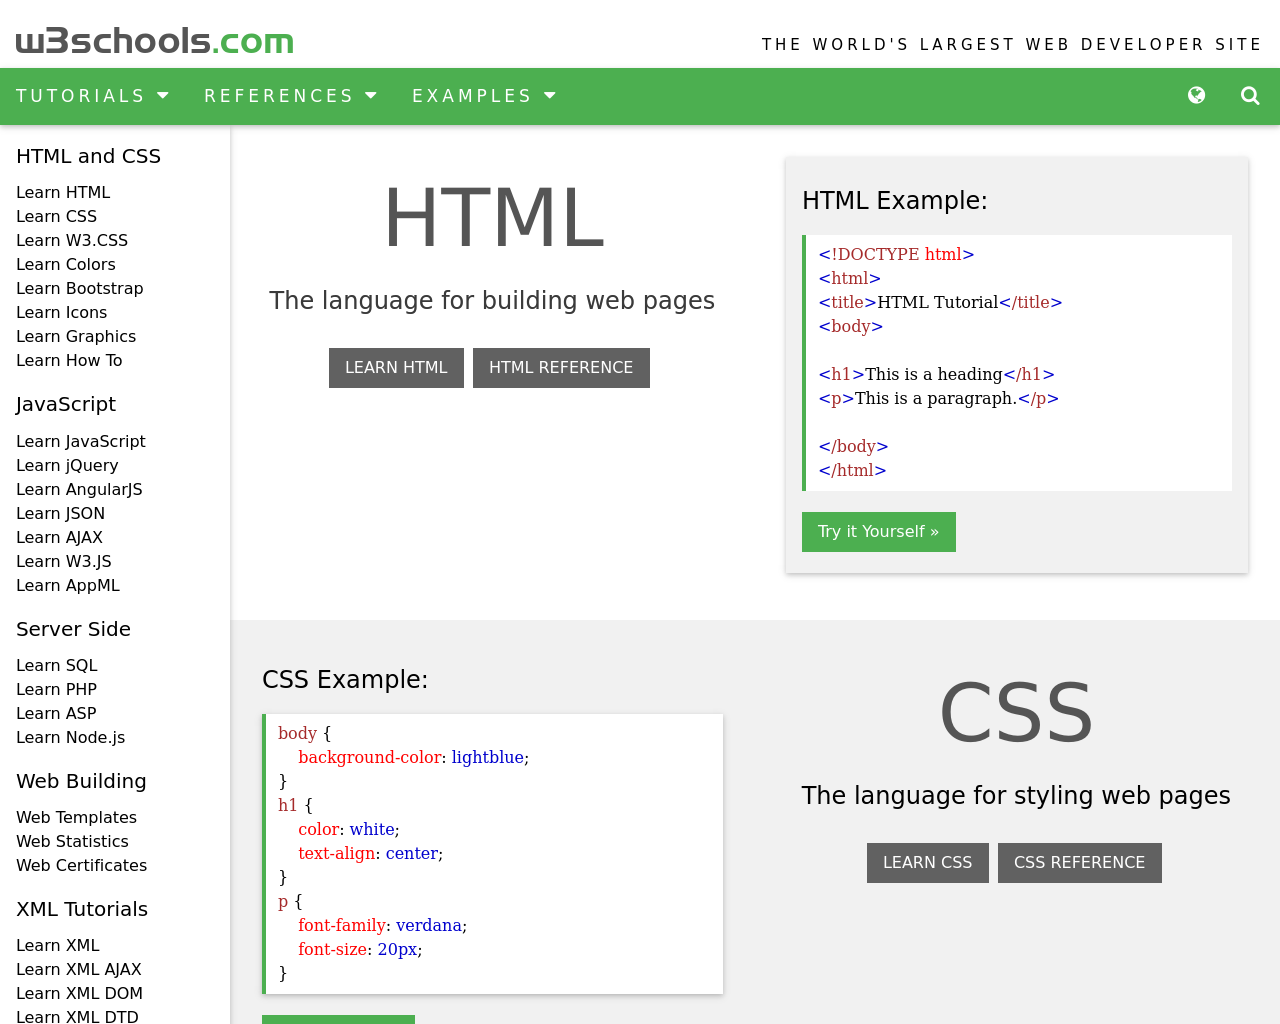 W3schools-Advertising-Reviews-Pricing